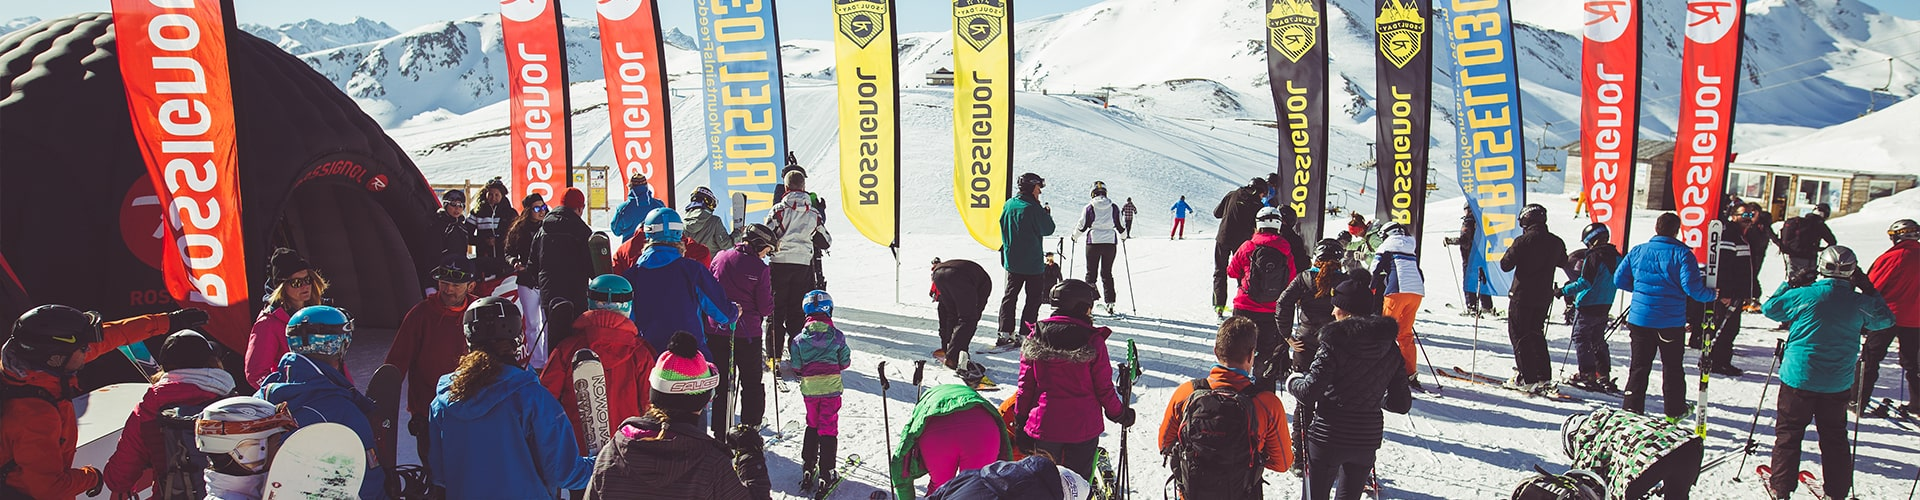 Events in Livigno